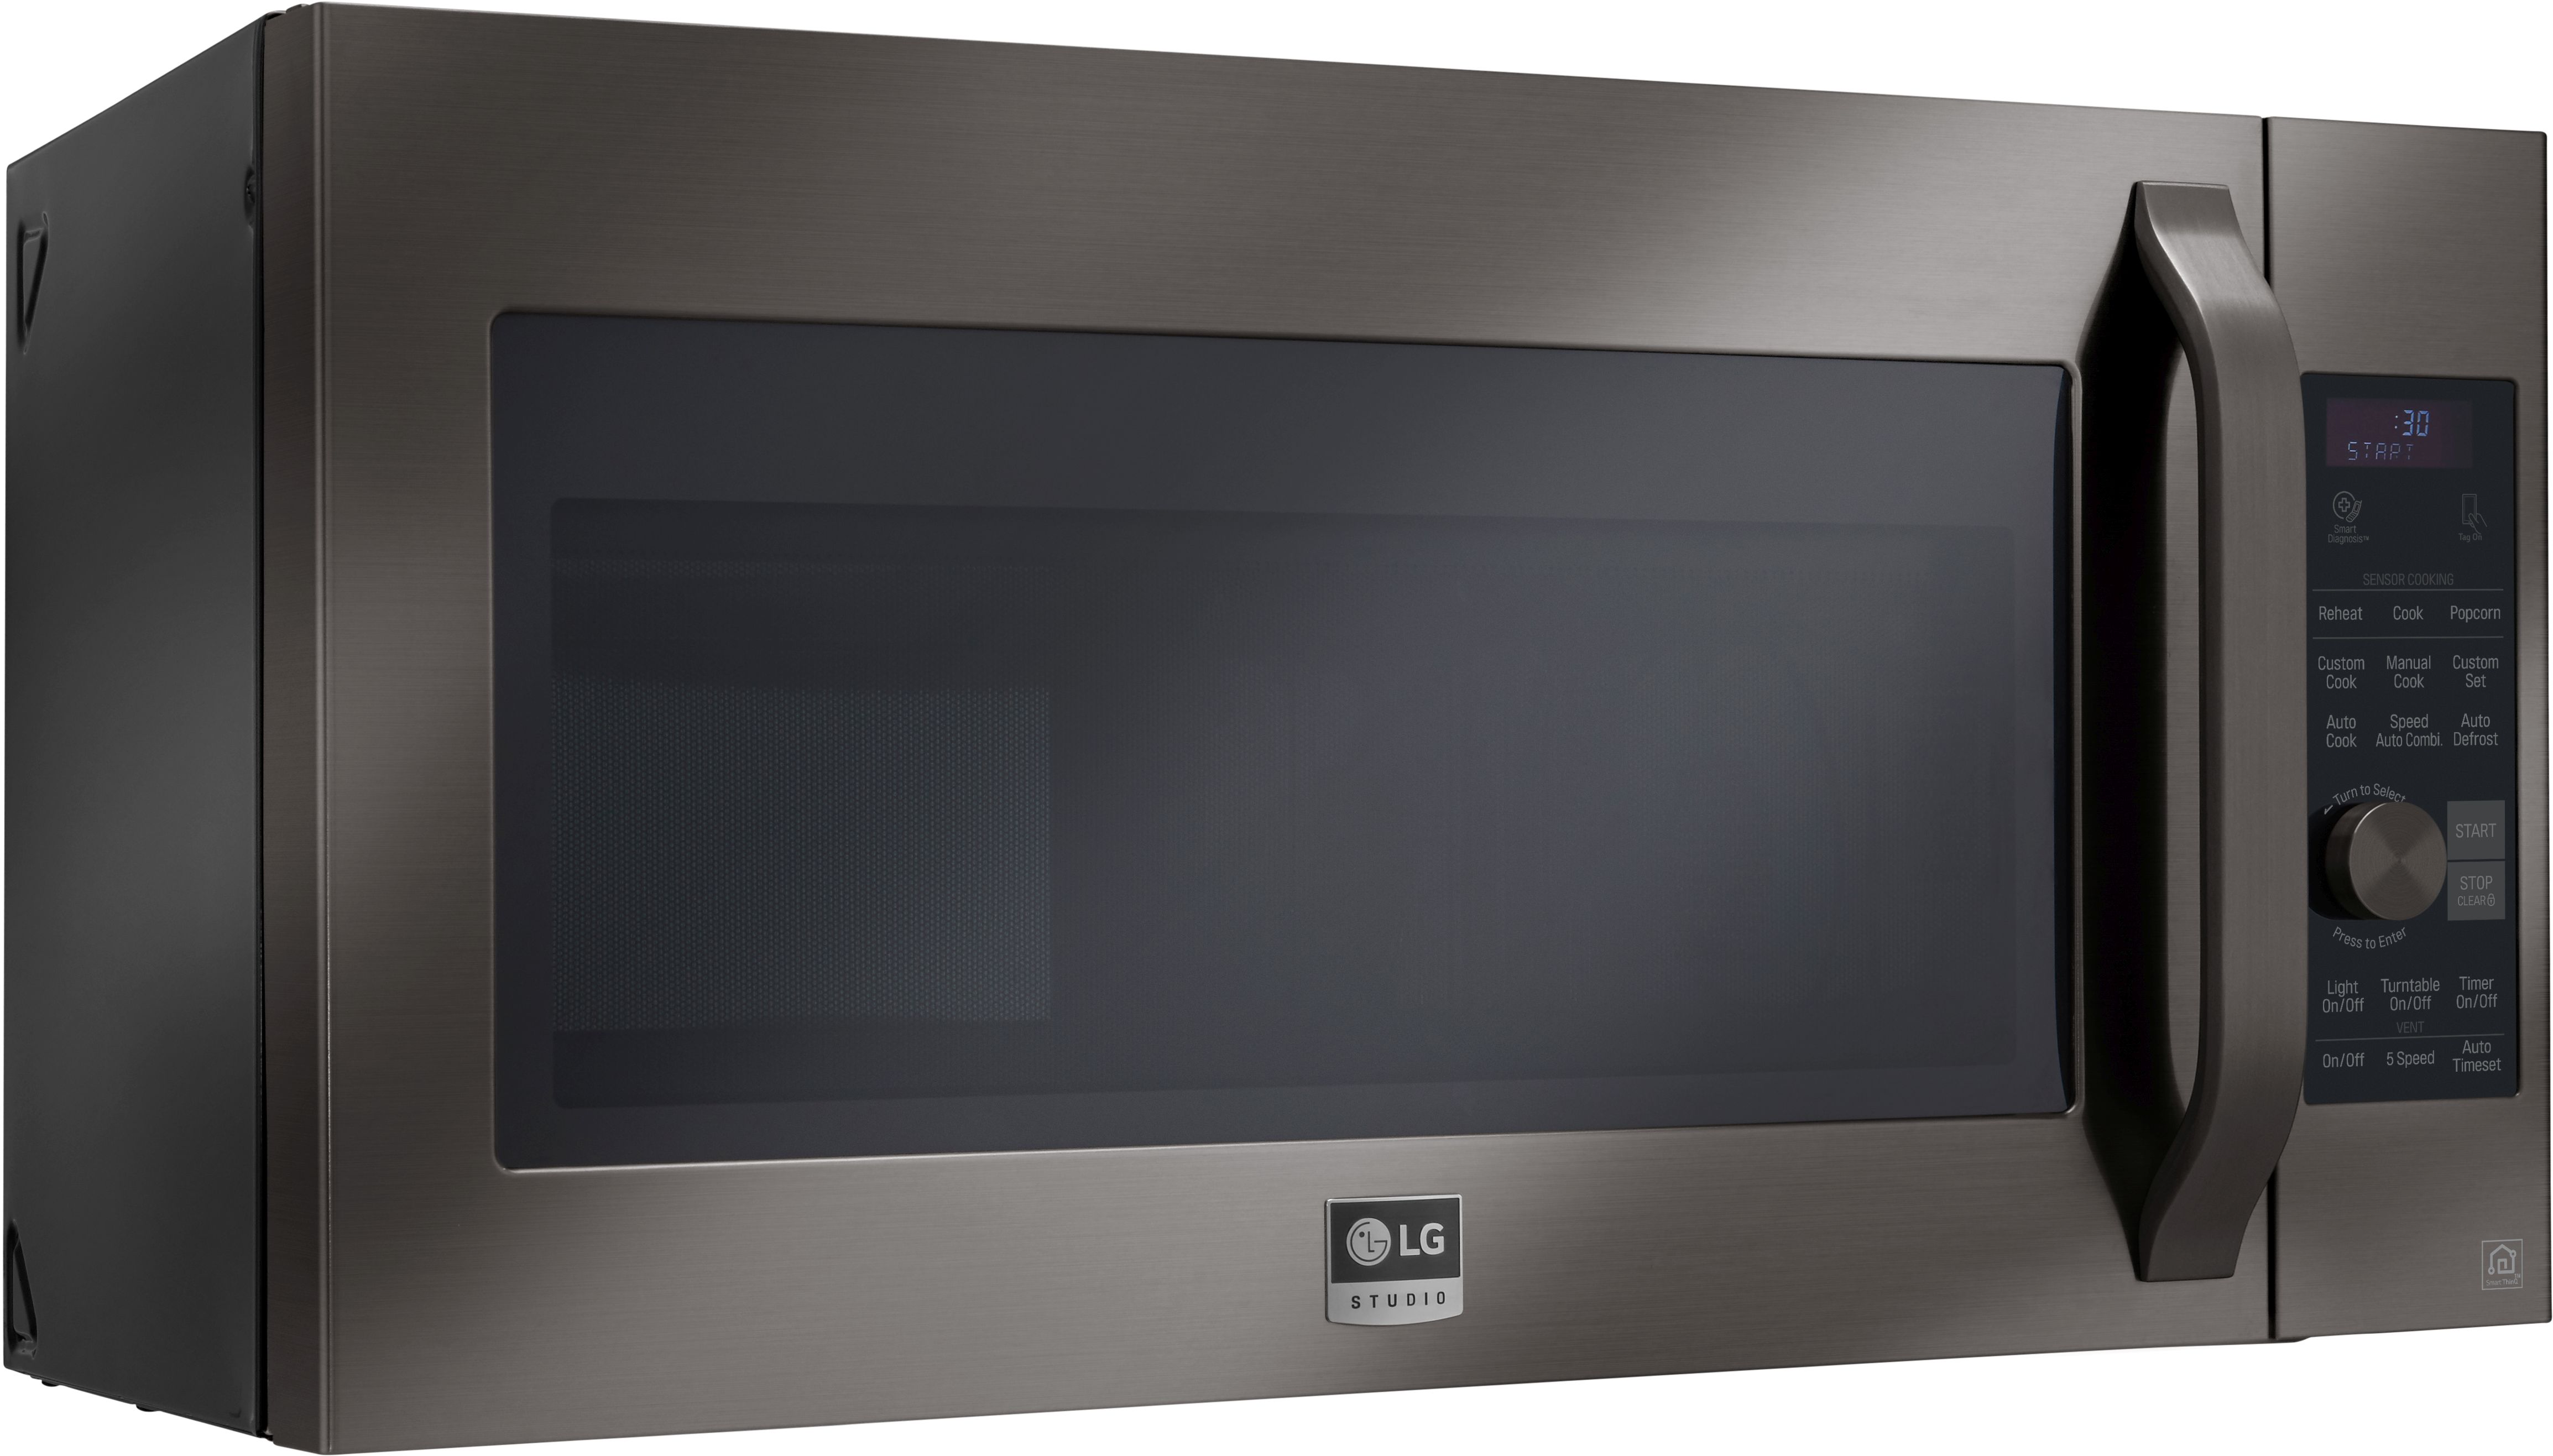 LG Over The Range Microwave-Black Stainless Steel-LSMC3089BD